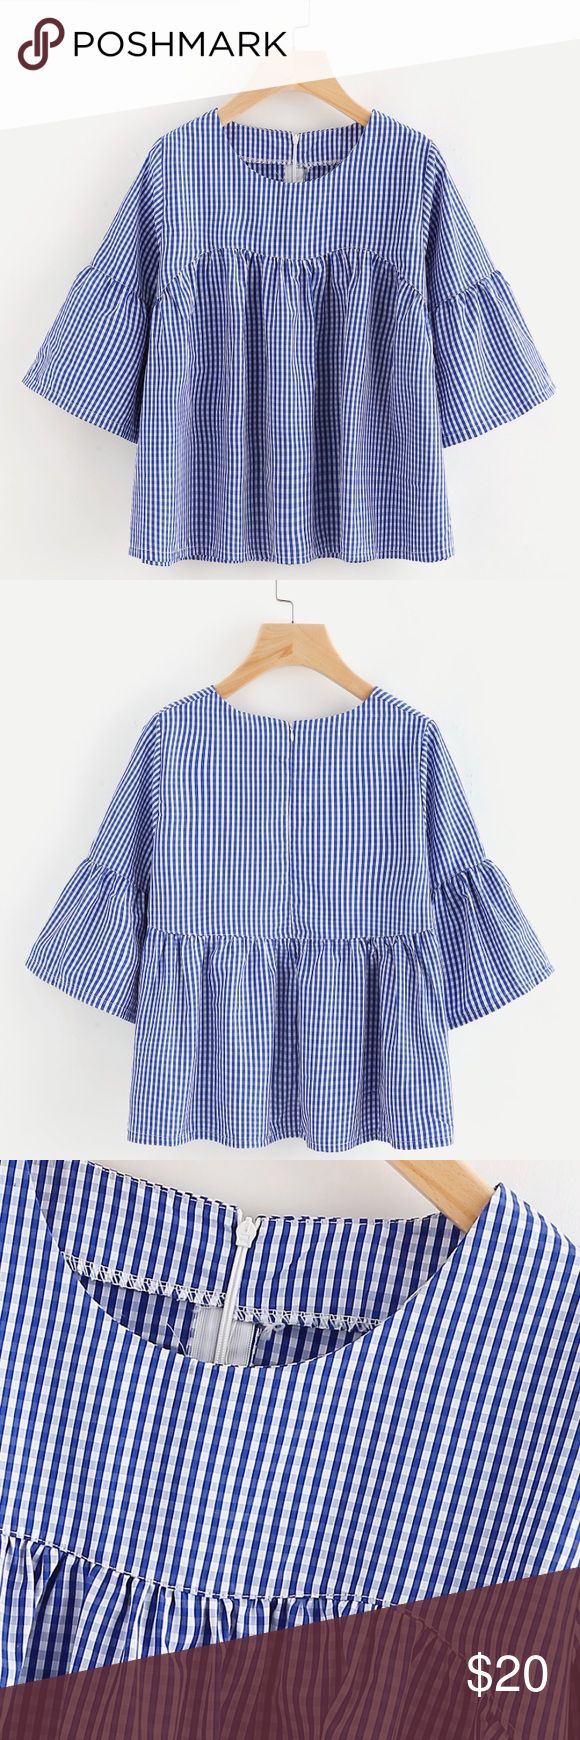 Blue gingham smock top Tagged for exposure. Bought from online boutique. There's no label. Brand new! Only tried on but didn't fit me :( Zara Tops Blouses